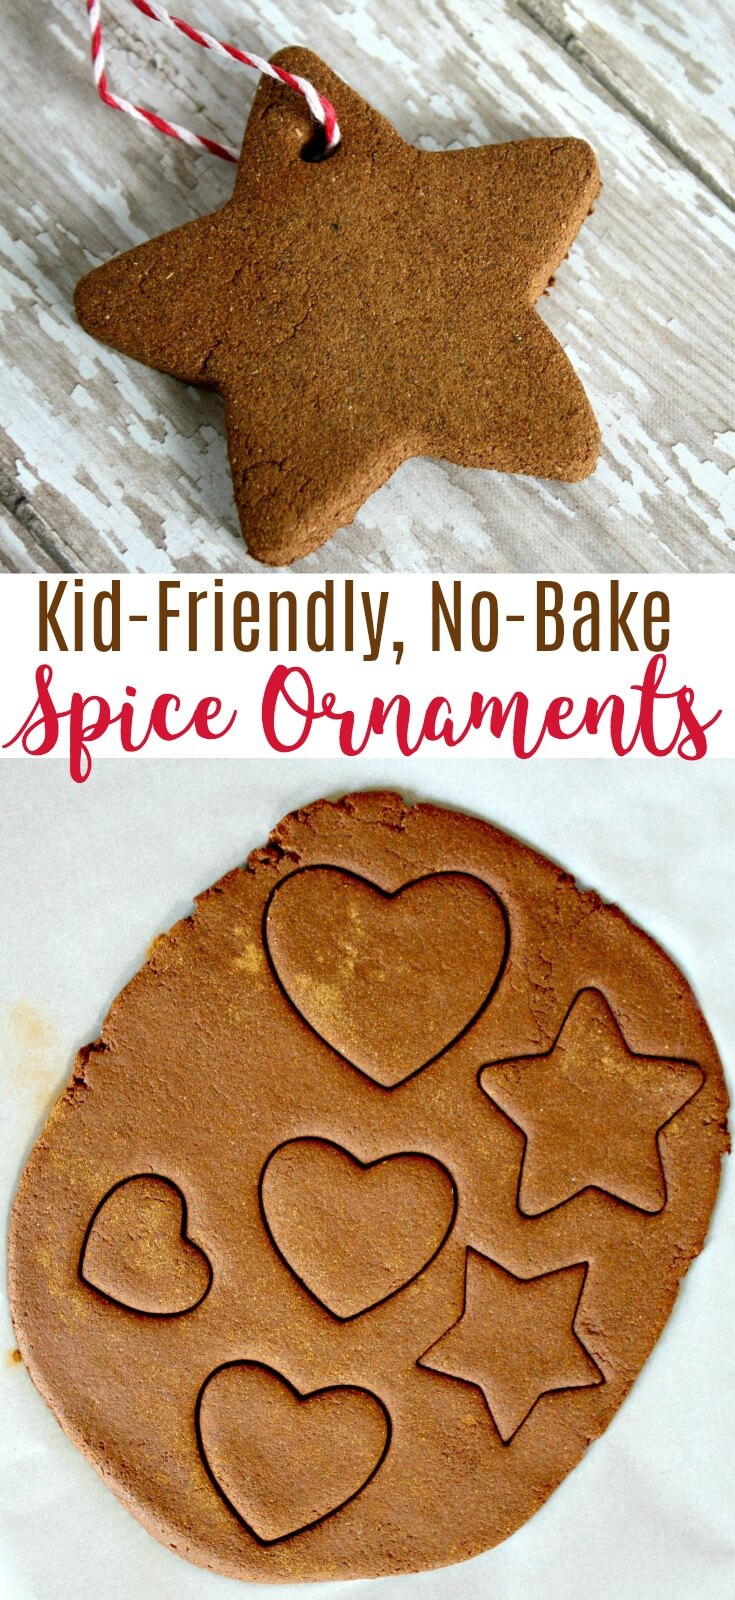 This no-bake cinnamon DIY spice ornament craft will wow the kids and have your house smelling amazing from fall through the holiday season